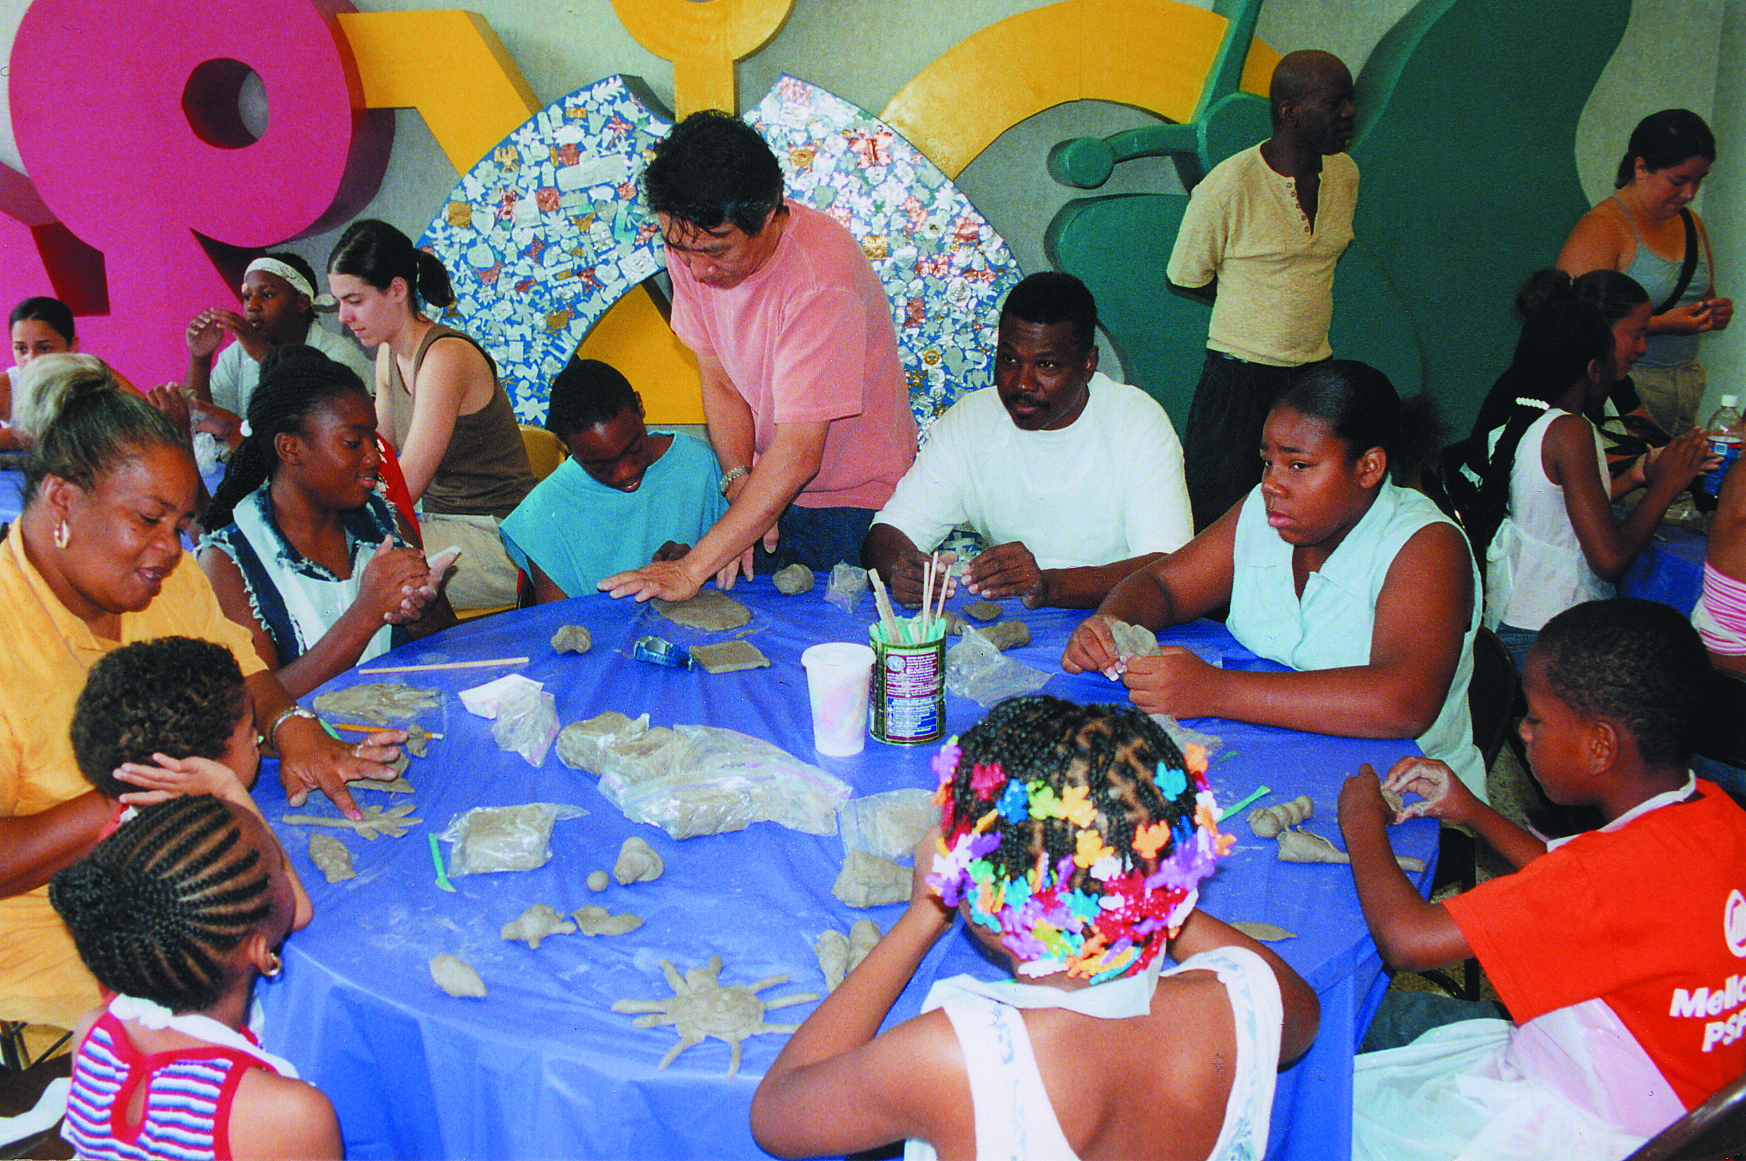 Adults and children working with clay.